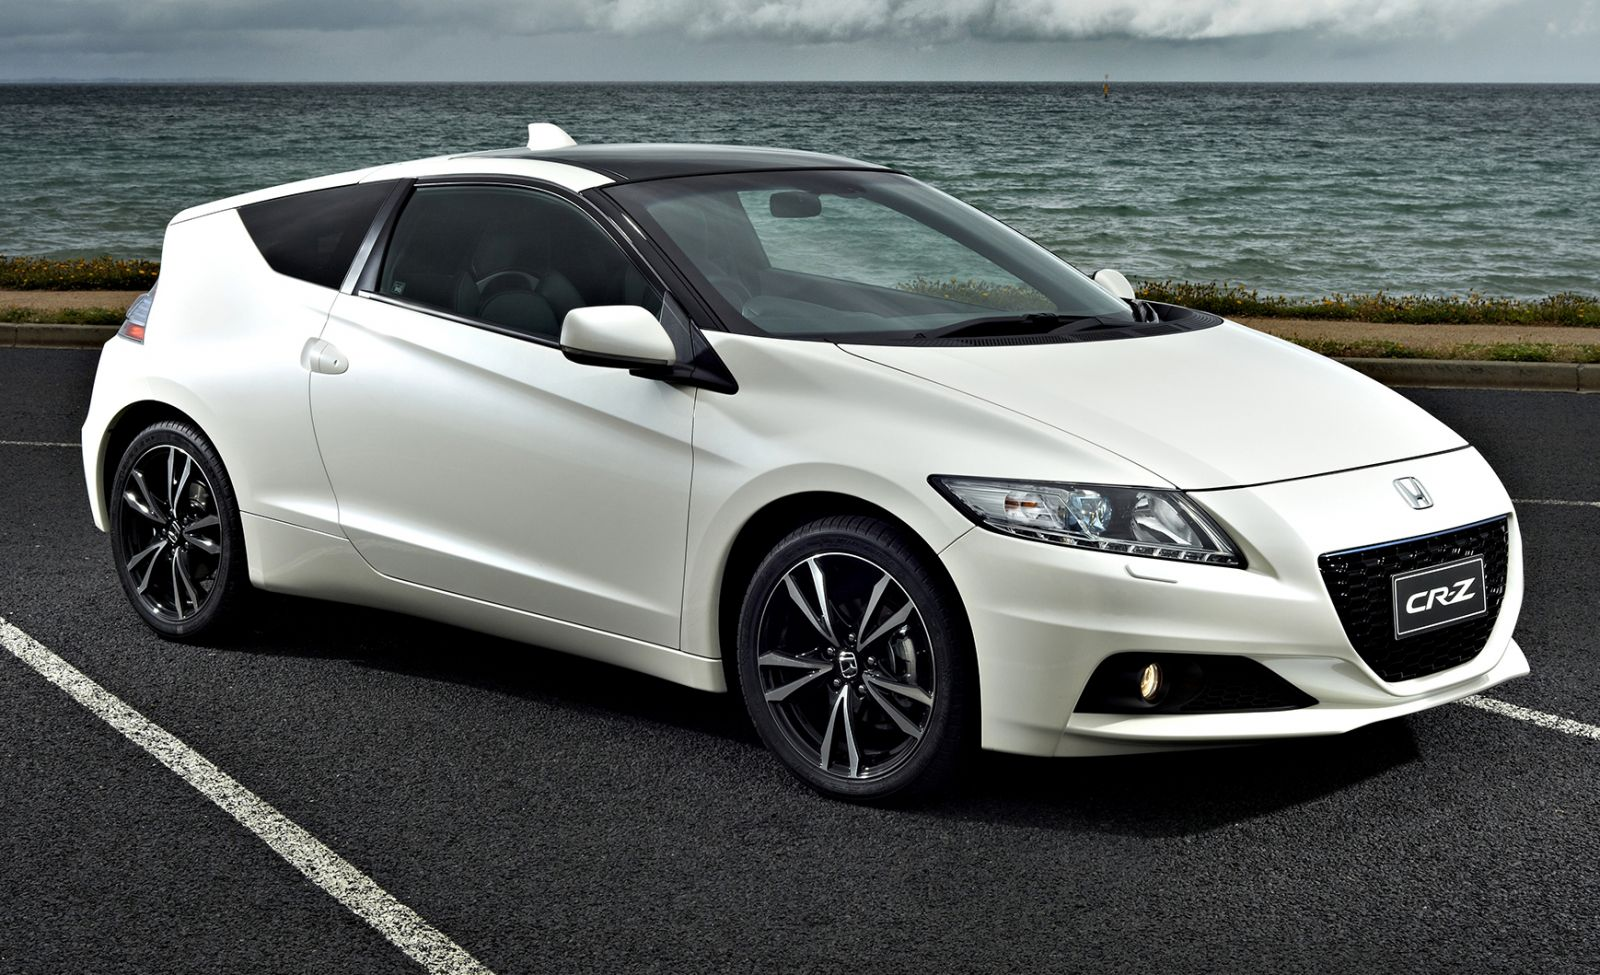 2013 honda cr z information and photos zombiedrive. Black Bedroom Furniture Sets. Home Design Ideas